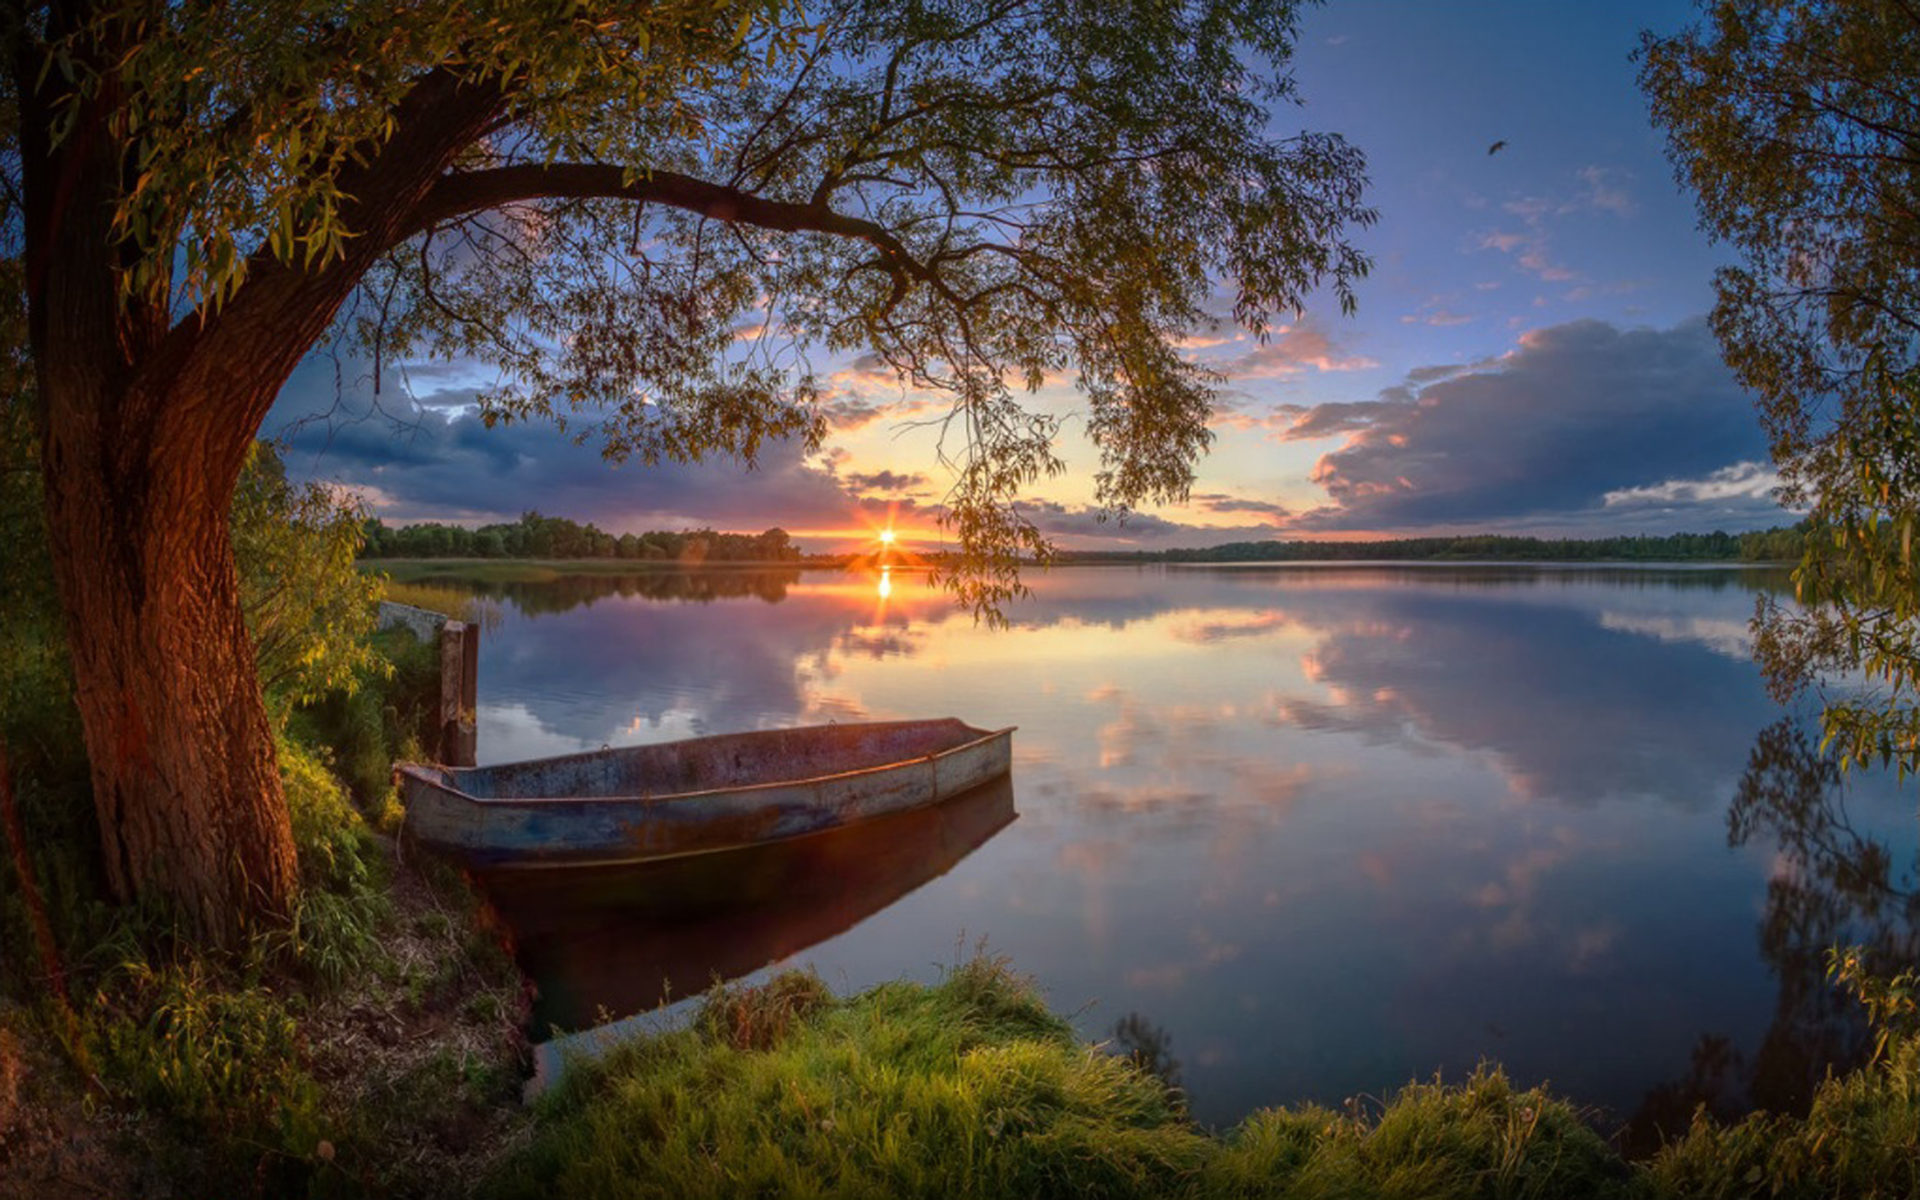 summer lake willow boat sunset wallpaper widescreen hd resolution wallpapers13 com